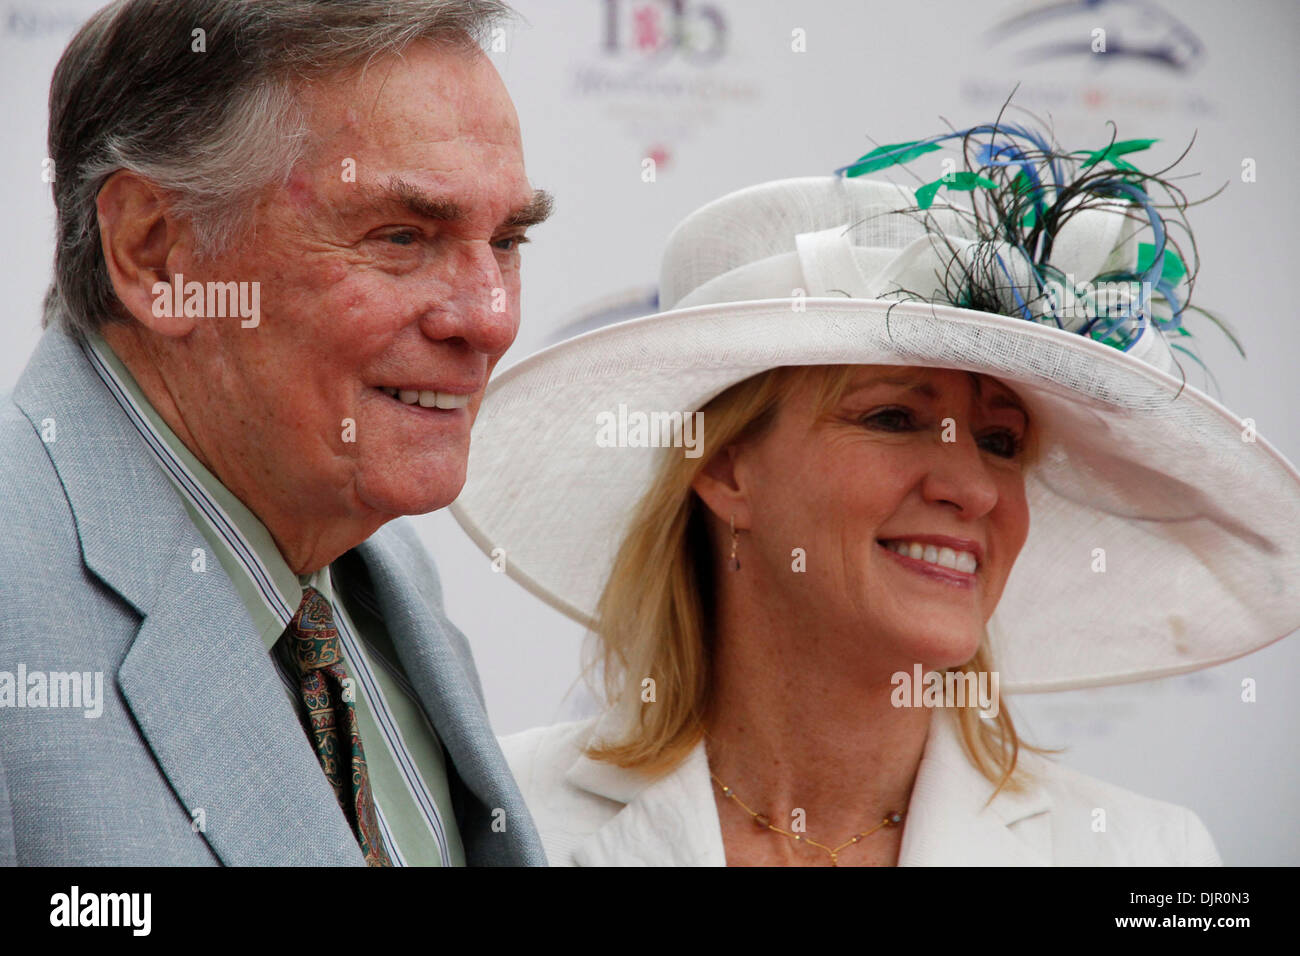 May 01, 2010 - Louisville, Kentucky, U.S. - Former ''Hollywood Squares'' gameshow host Peter Marshall and his wife, Lori, posed on the red carpet at the 136th running of the Kentucky Derby at Churchill Downs Saturday May 1, 2010. Photo by David Perry (Credit Image: © Lexington Herald-Leader/ZUMApress.com) - Stock Image